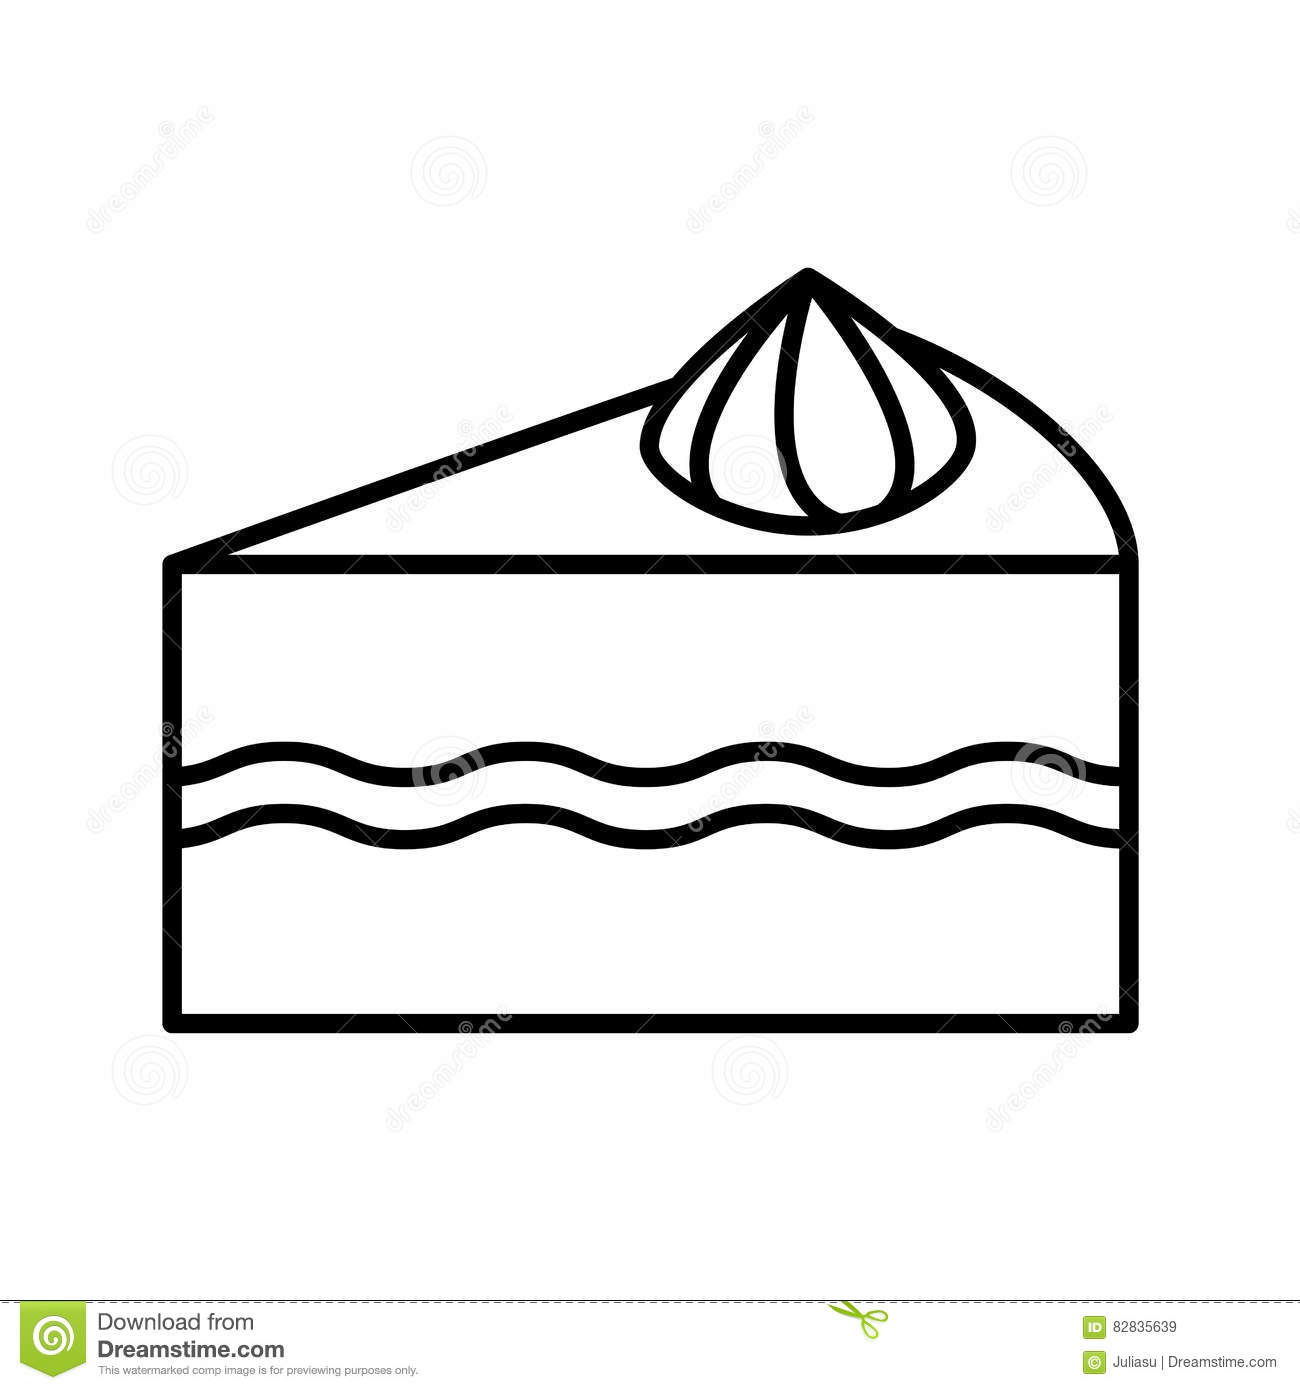 Cake Outline Icon Stock Vector - Image: 82835639